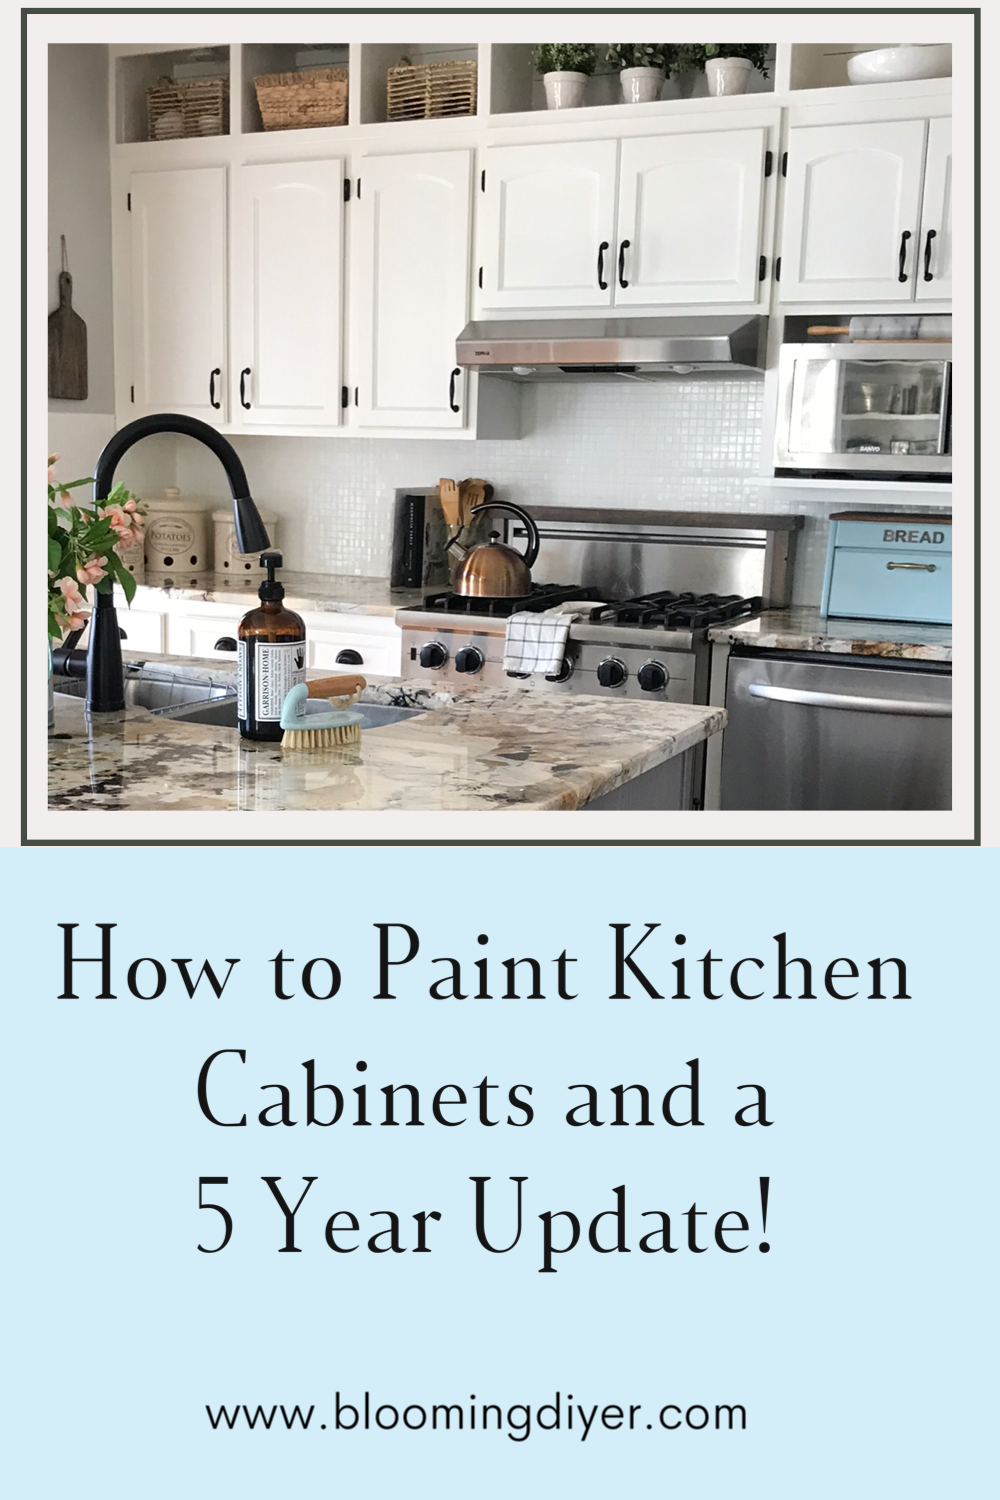 How To Paint Kitchen Cabinets To Last Kitchen Cabinets Kitchen Paint Kitchen